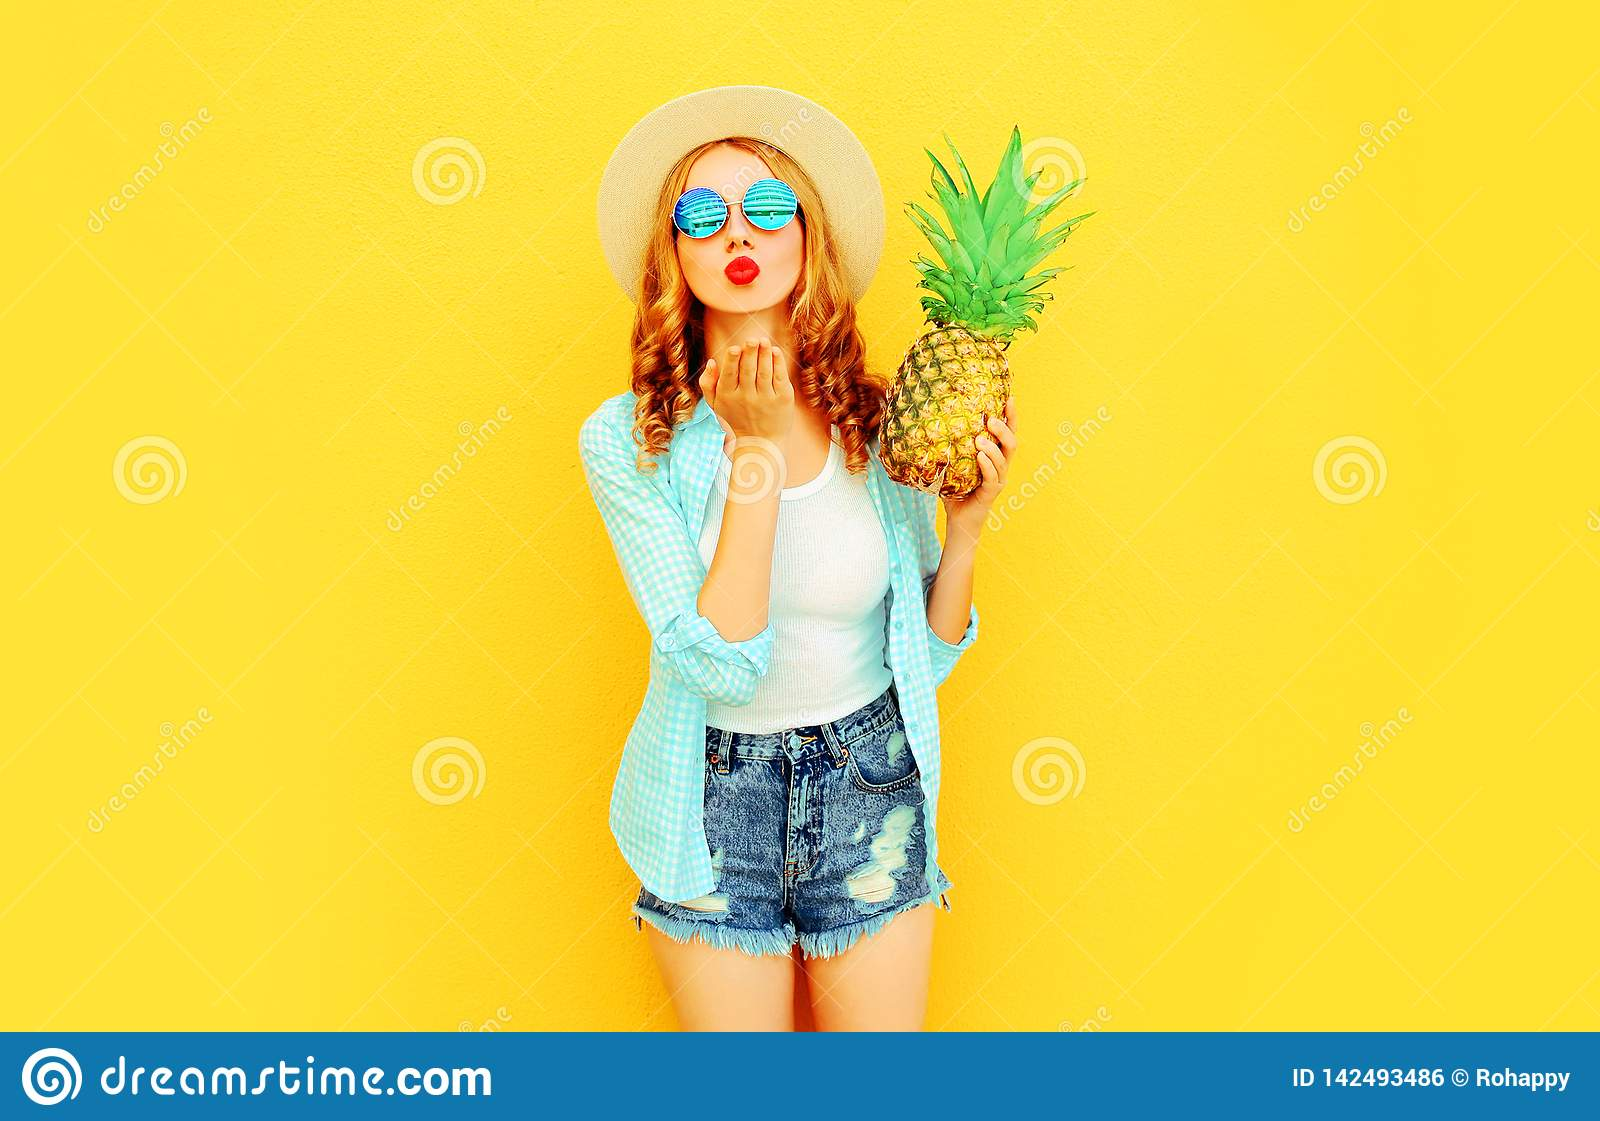 Portrait woman with pineapple sending sweet air kiss in summer straw hat, sunglasses, shorts on colorful yellow